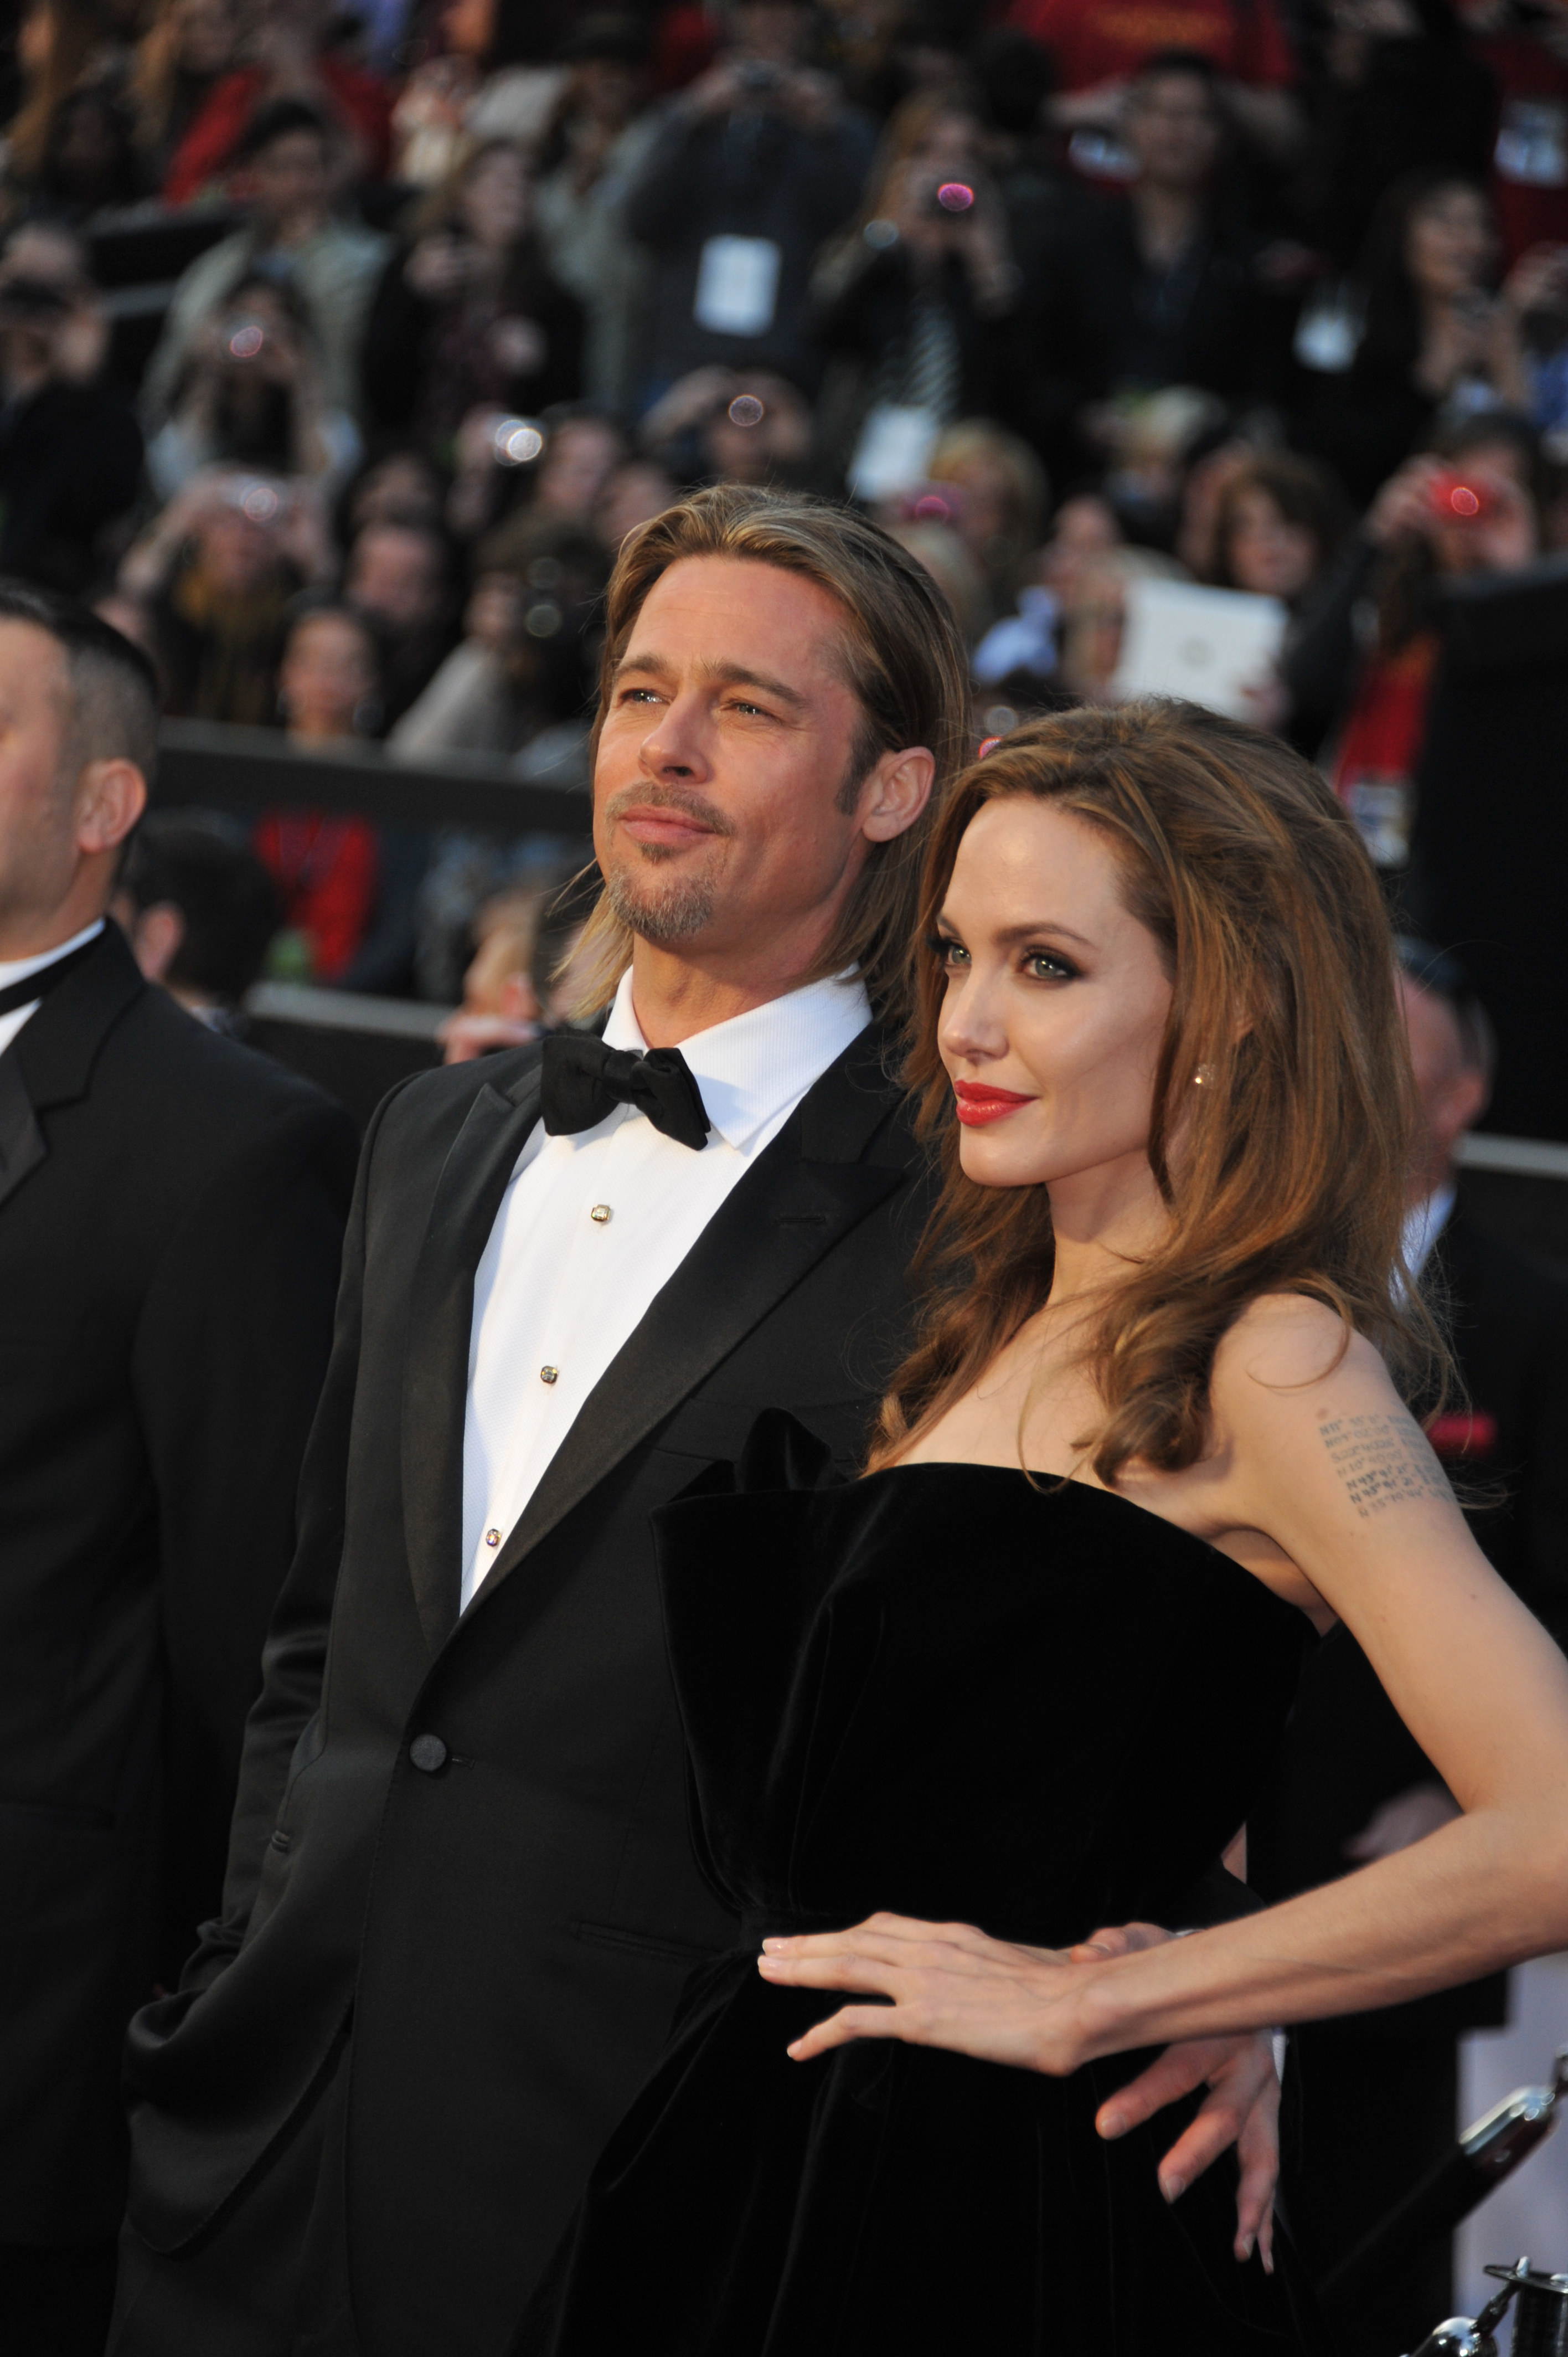 Brad and Angelina, both in formal attire, pose for photographers